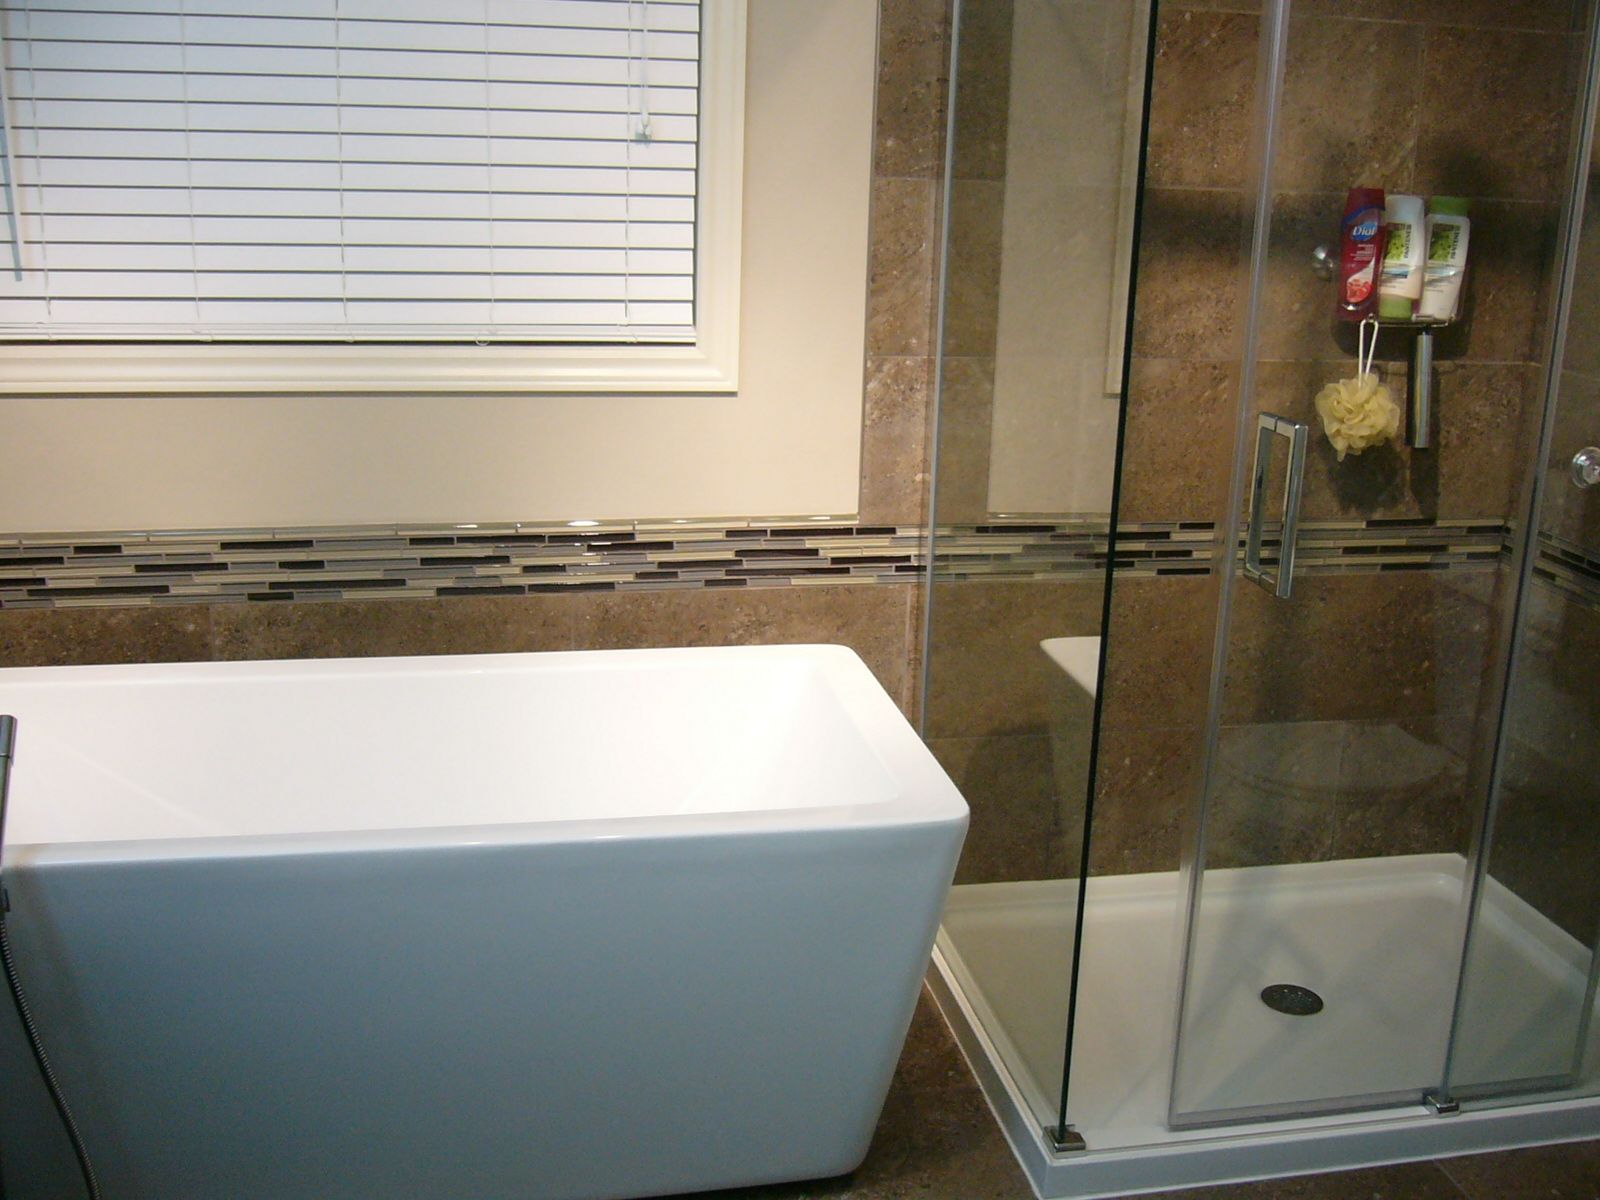 New free standing tub and glass shower enclosure | Things I love ...